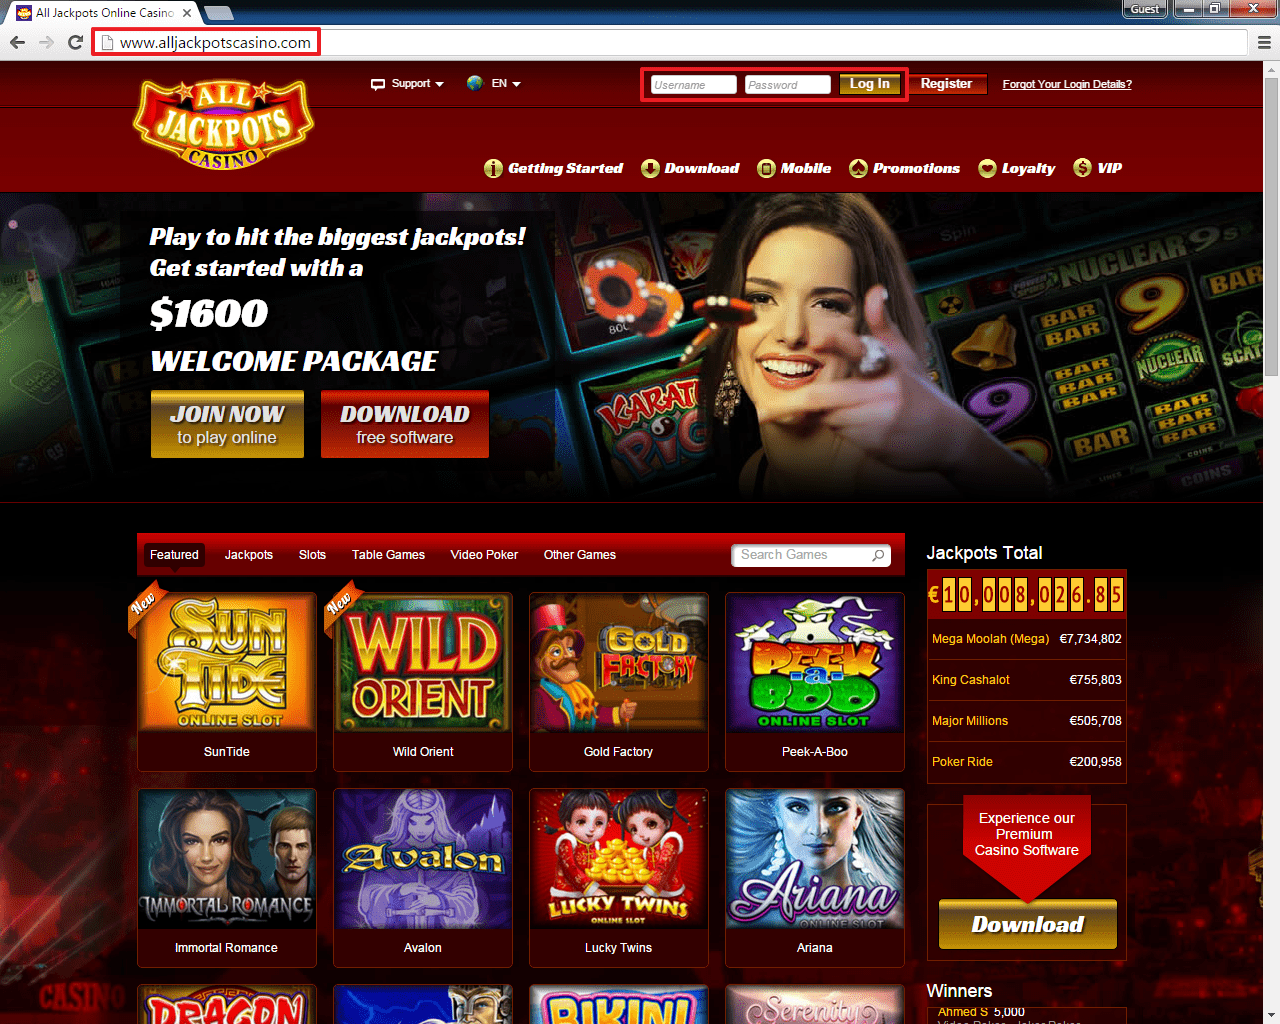 Top Online Casinos Accepting Players from the USA